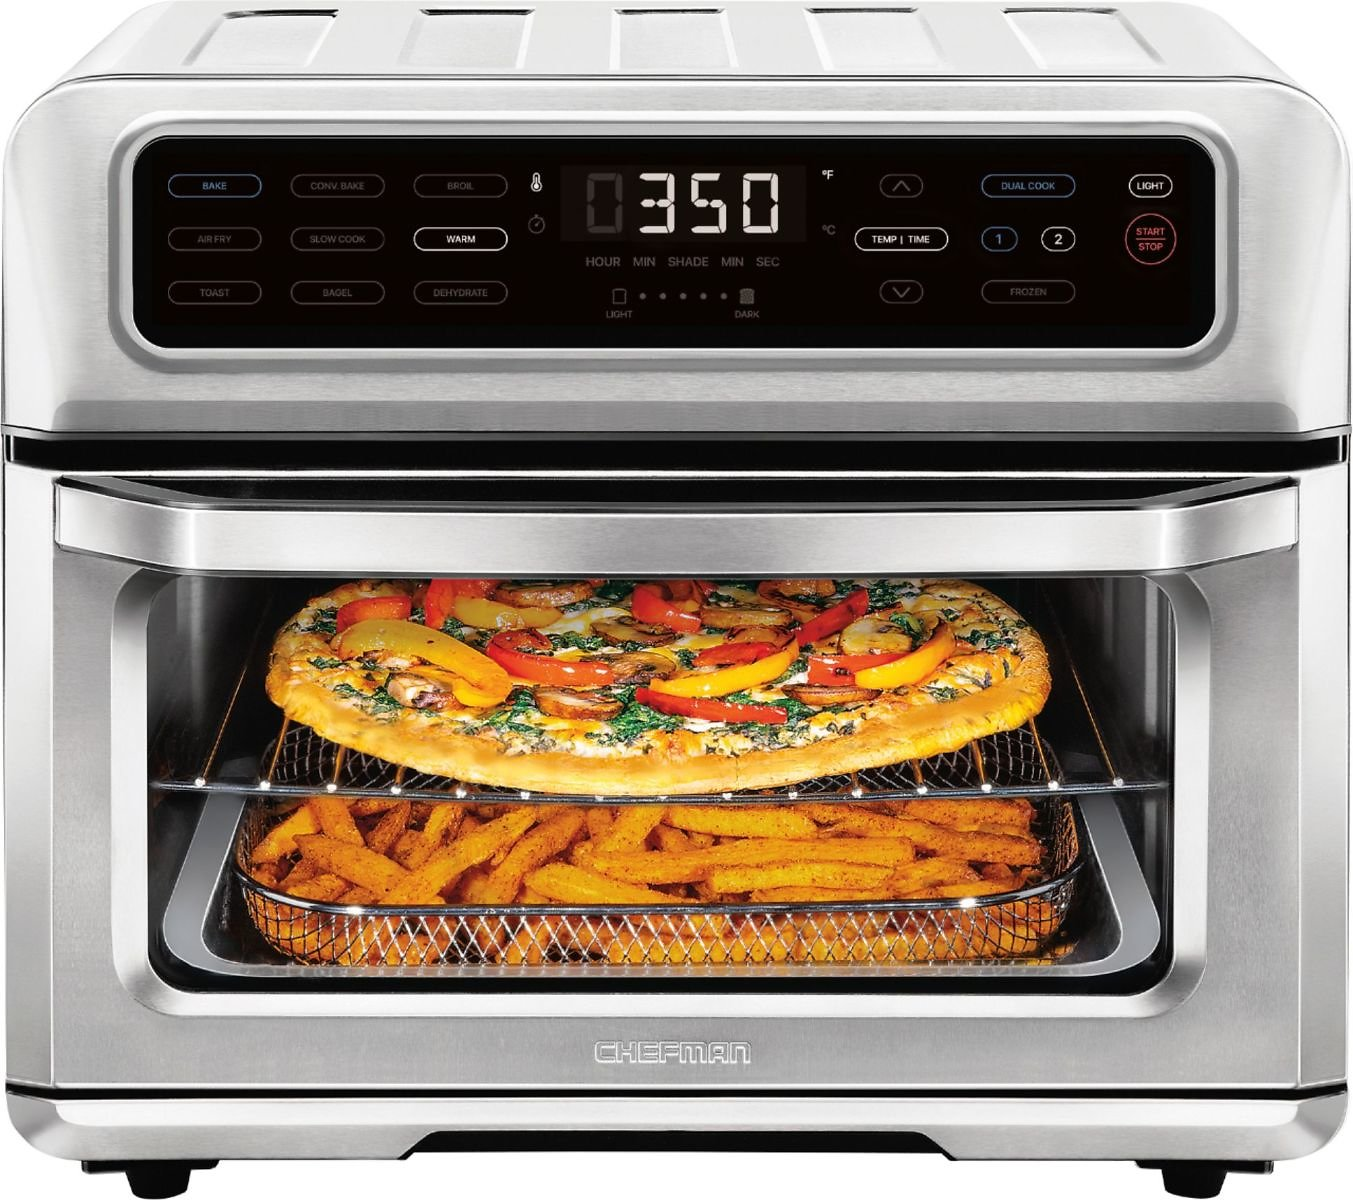 ChefmanDual-Function Air Fryer + Toaster Oven Combo 20L